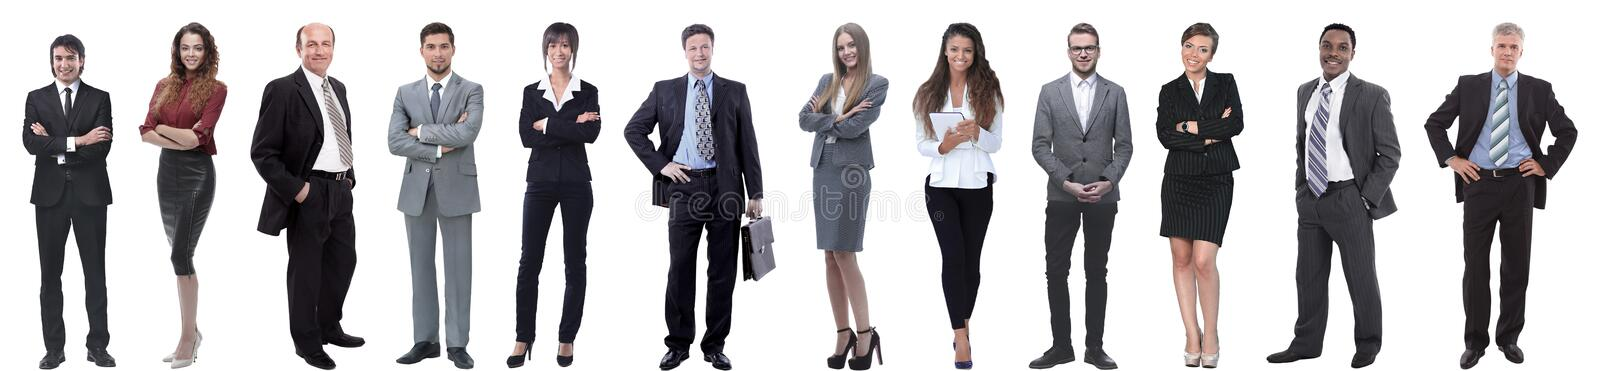 Group of successful business people isolated on white royalty free stock images